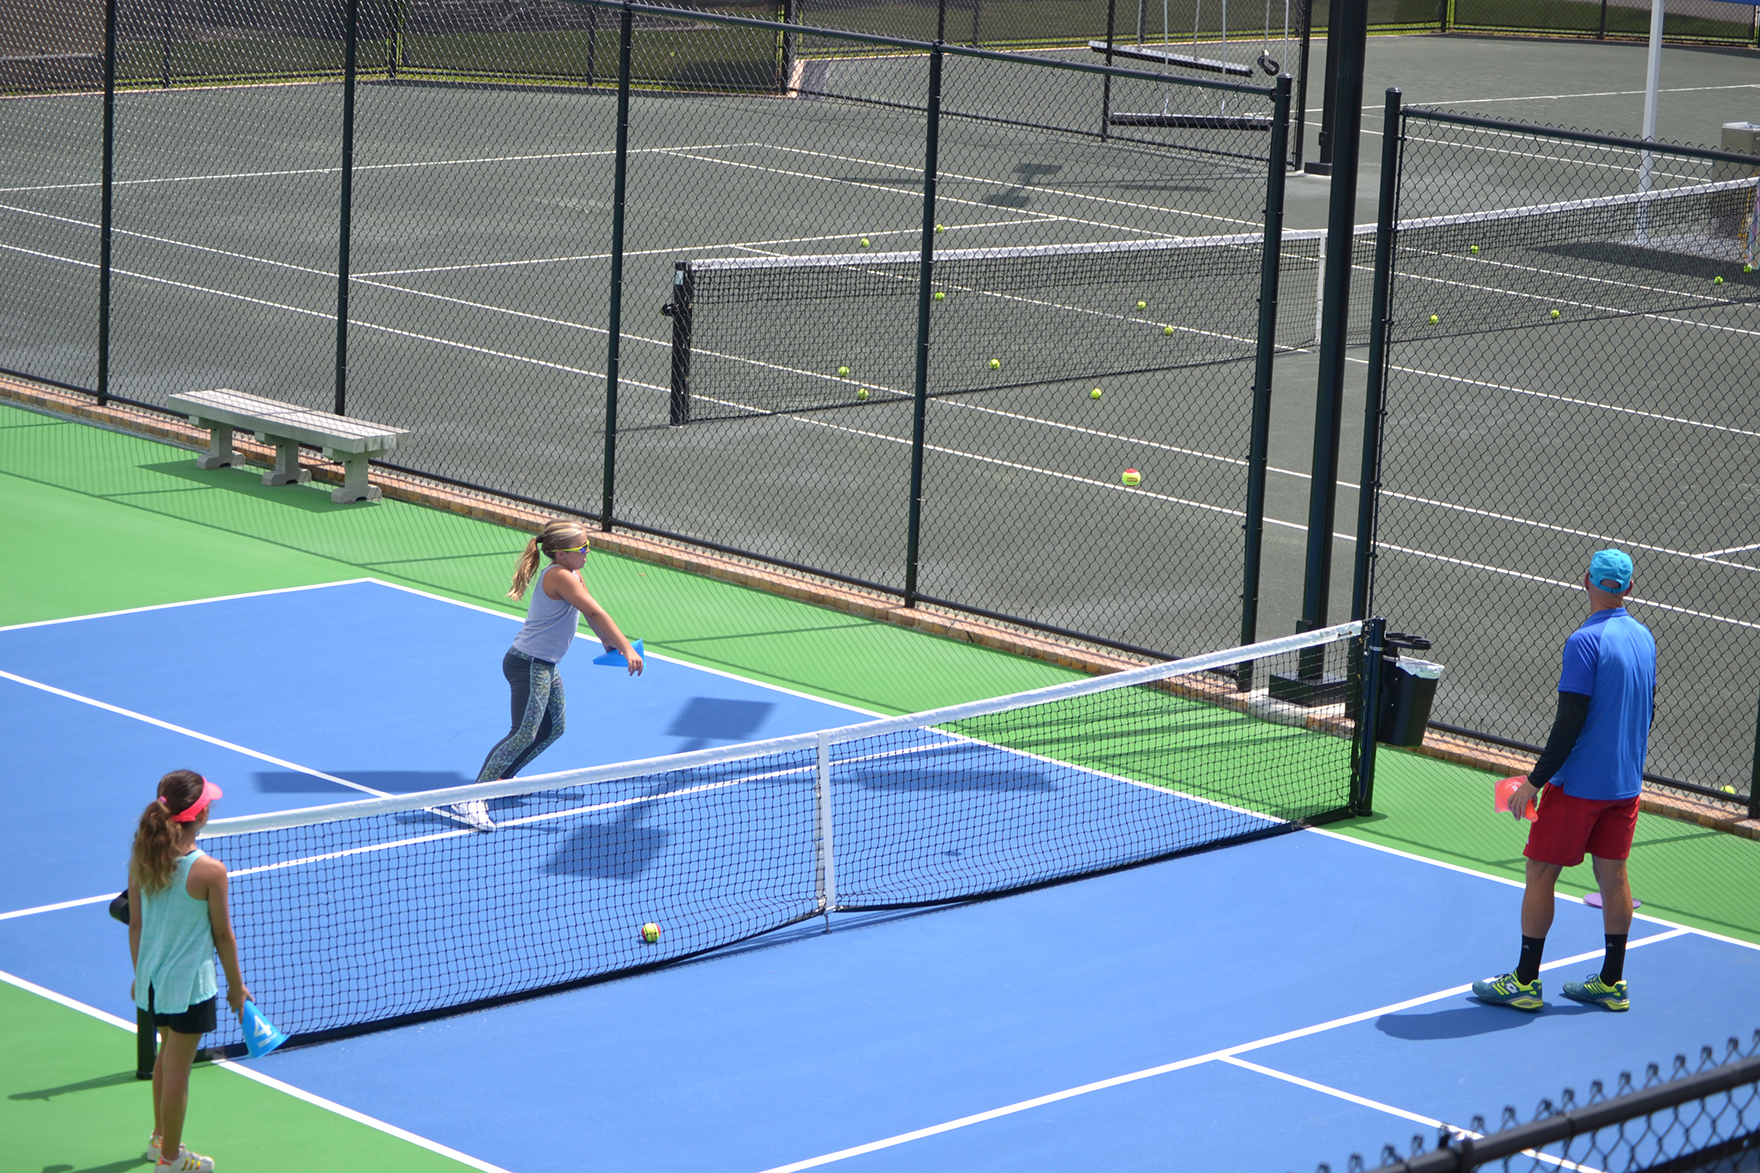 A girl takes a tennis lesson at the courts in Winter Haven.